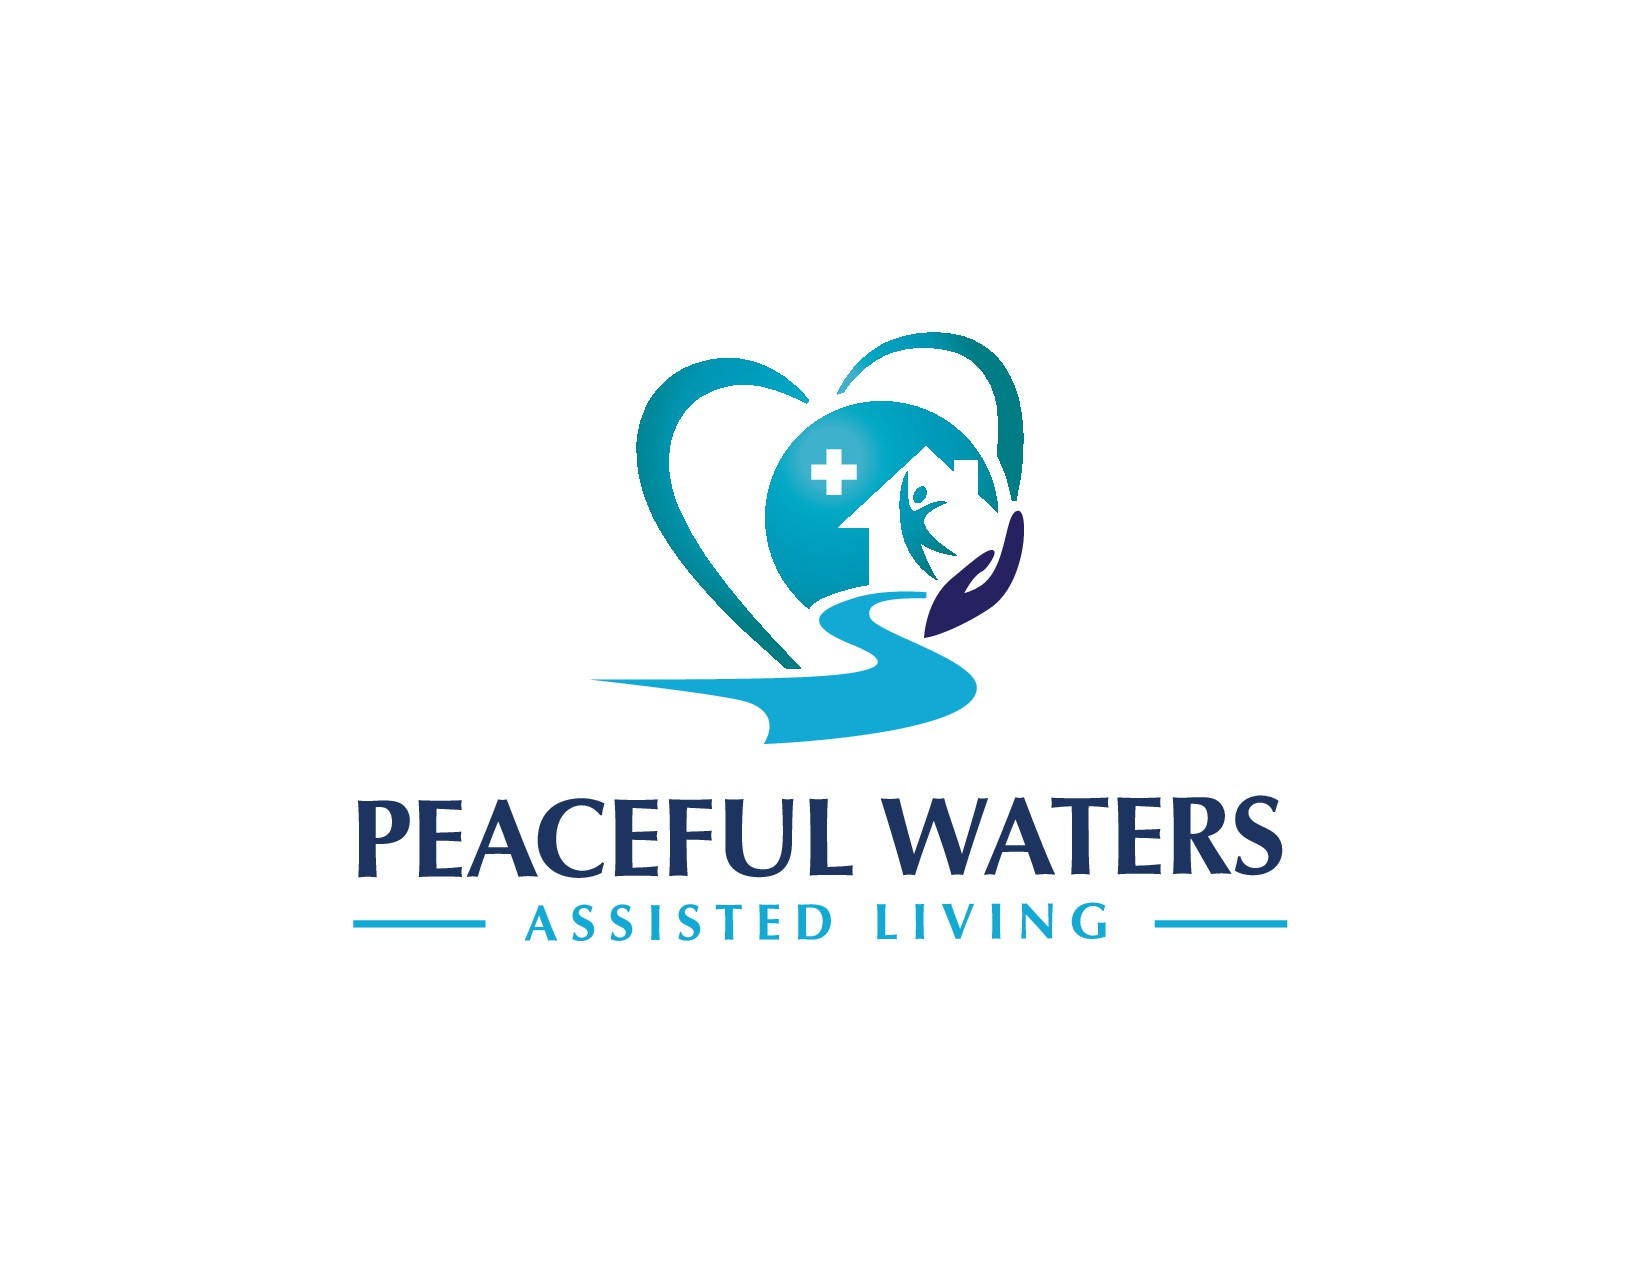 Peaceful Waters Assisted Living